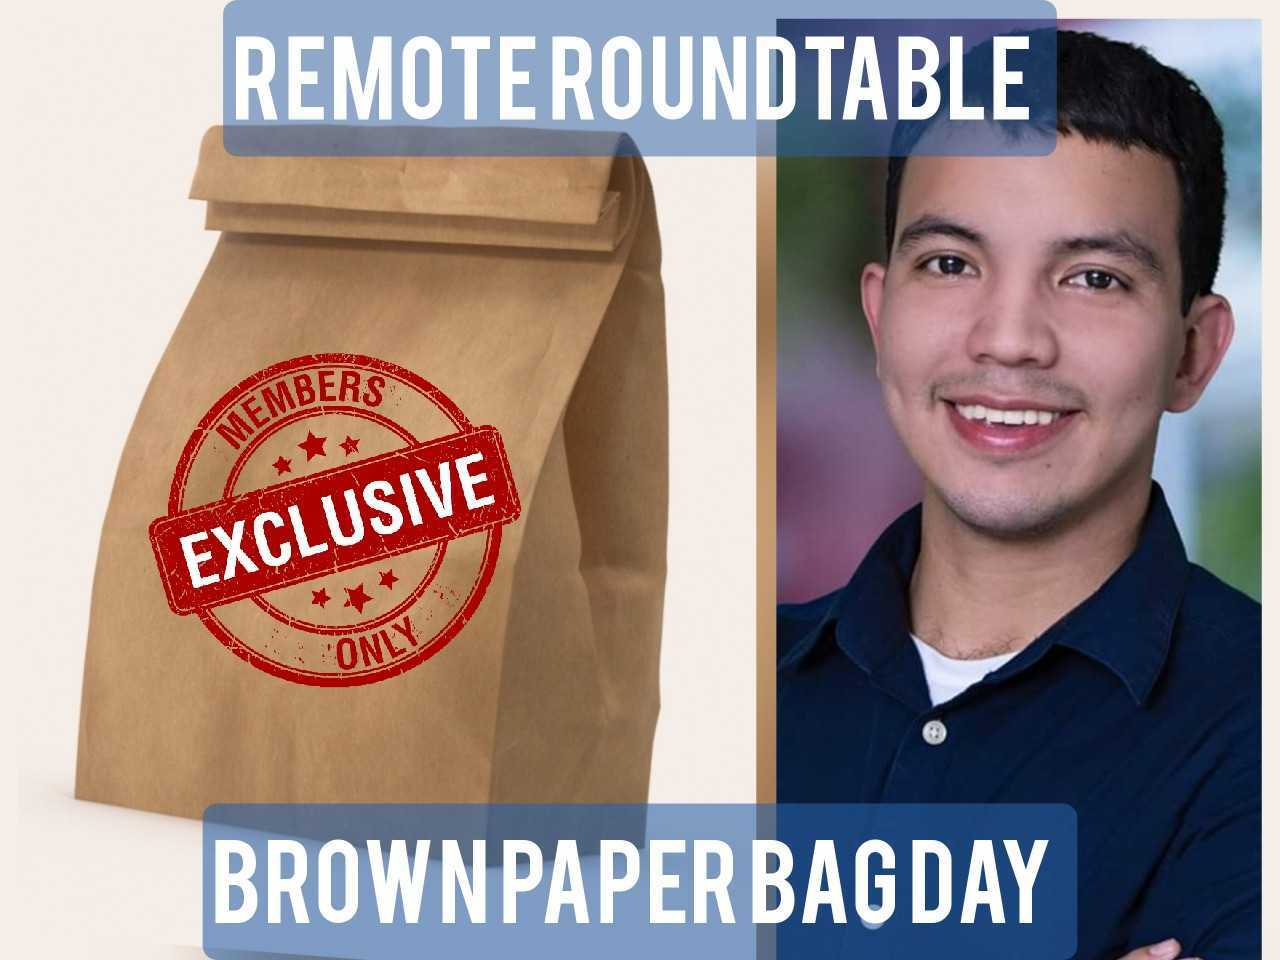 Remote Roundtable - National Brown Paperbags